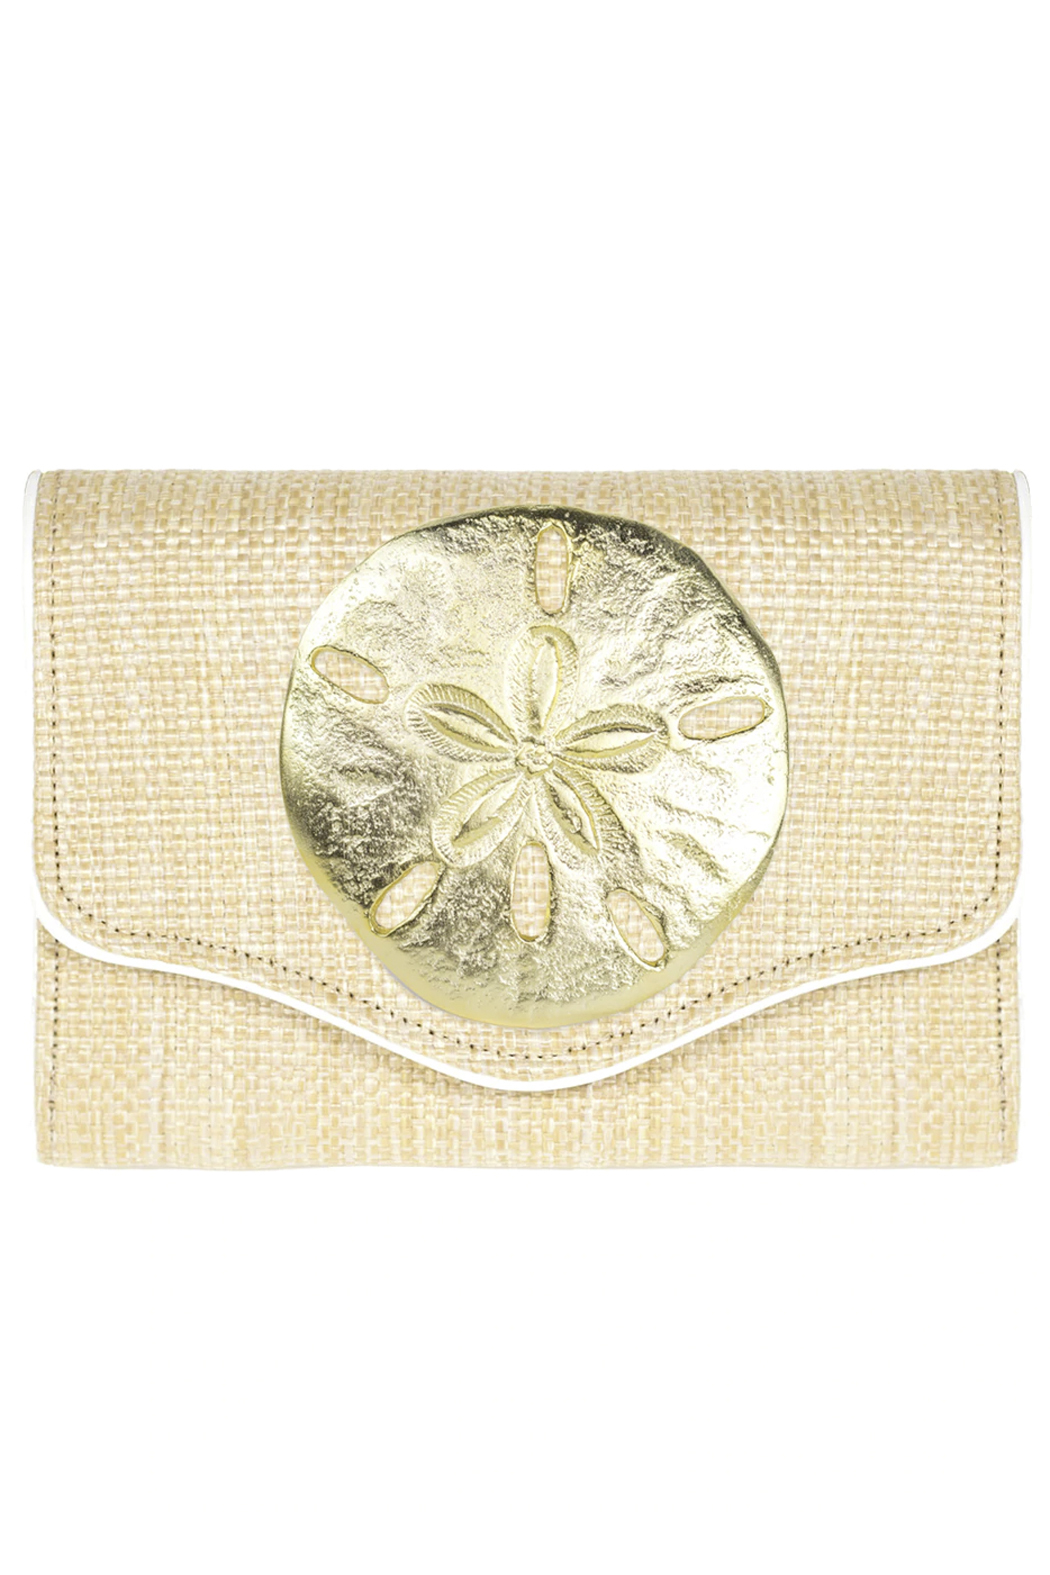 Lisi Lerch Sadie Clutch/Crossbody - Front Cropped Image